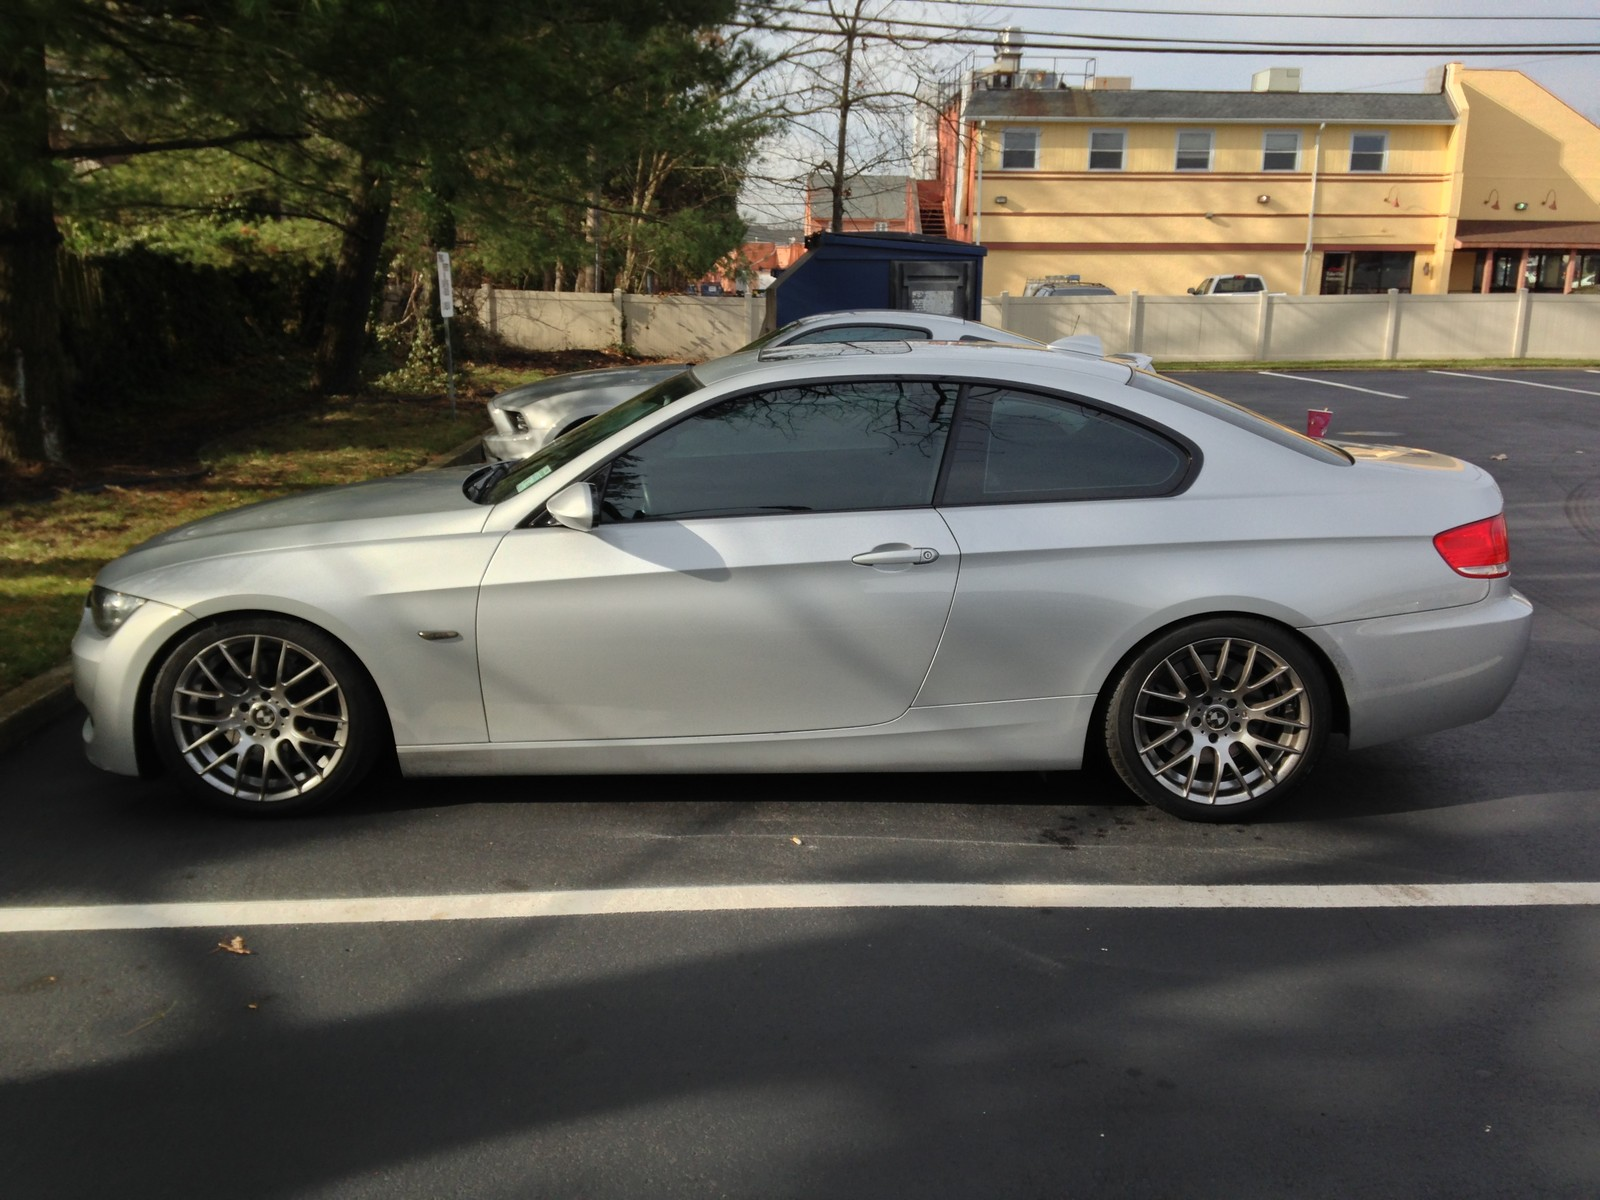 Bmw 335xi For Sale >> 2009 Titanium Silver Metalic BMW 335xi E92 N54 Pictures, Mods, Upgrades, Wallpaper - DragTimes.com